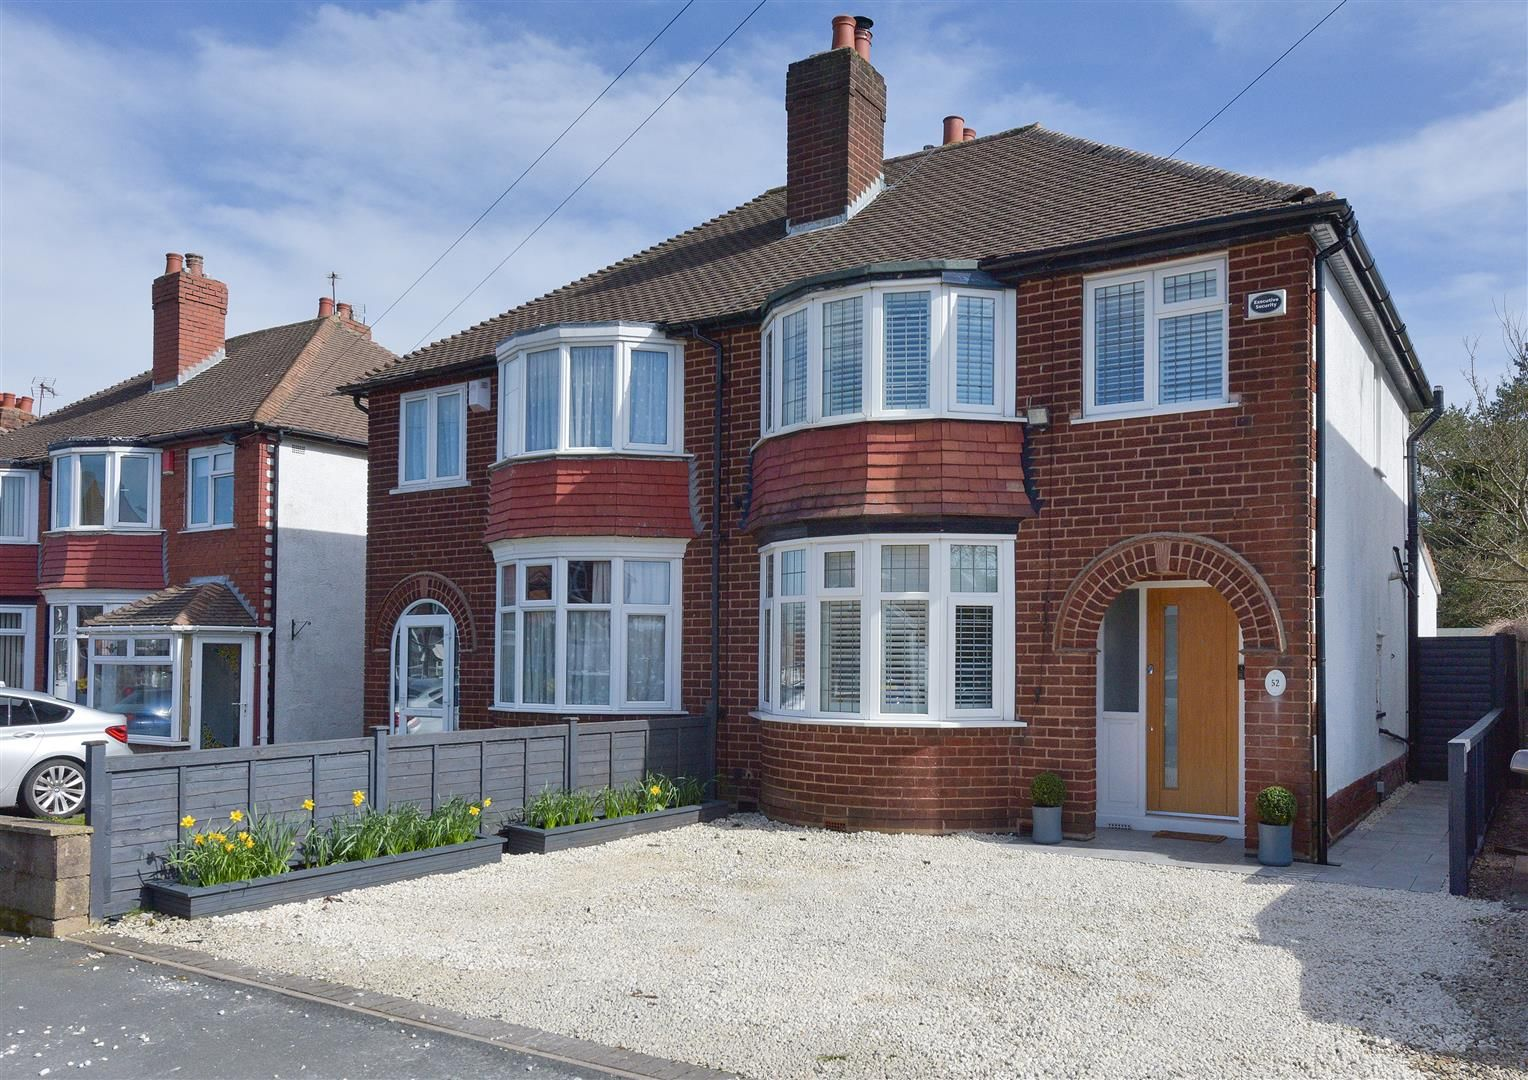 3 bed semi-detached for sale, B68